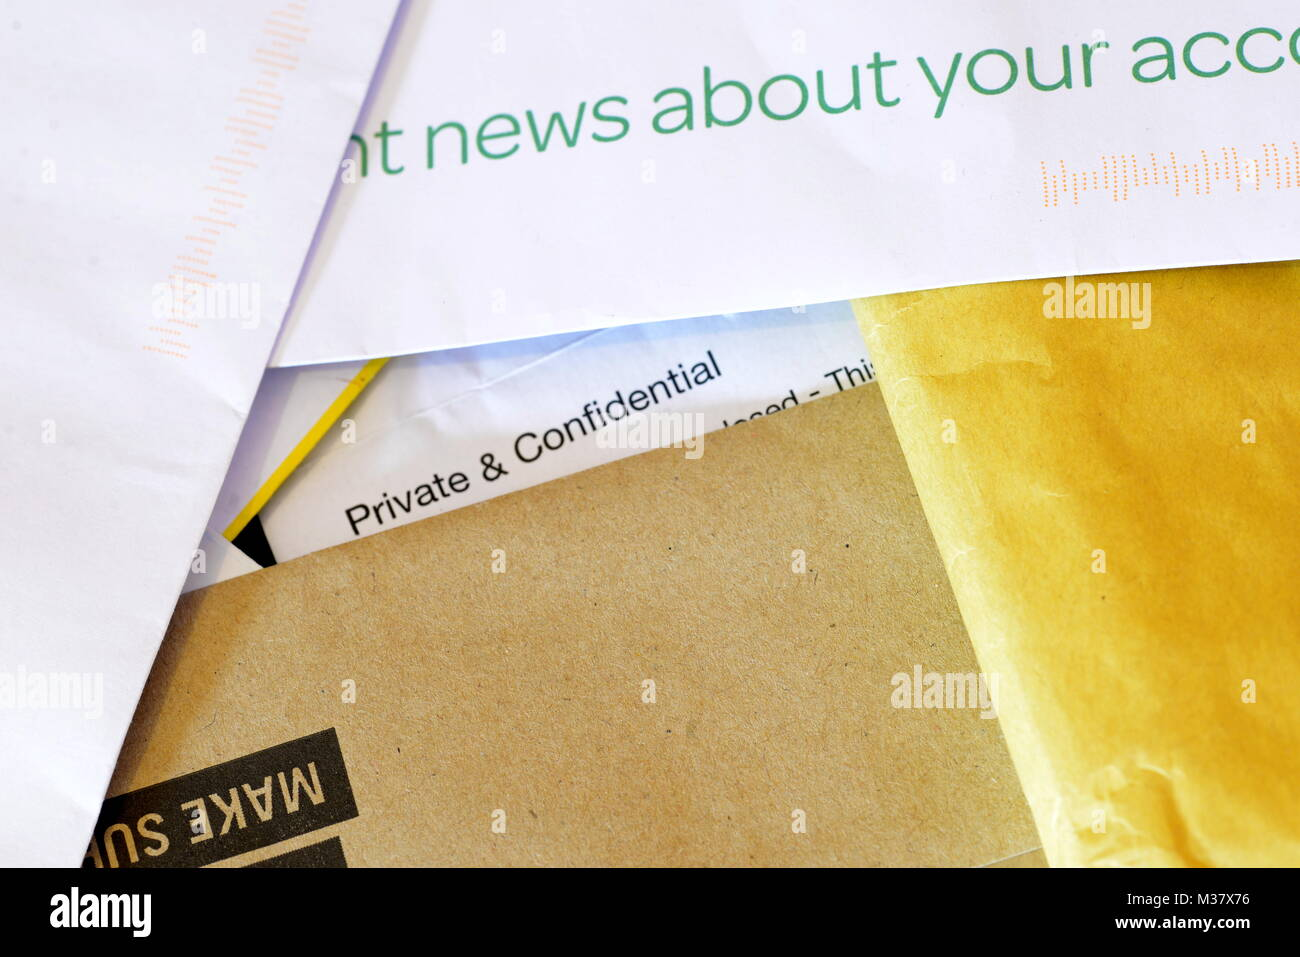 opened envelopes and junk mail - Stock Image